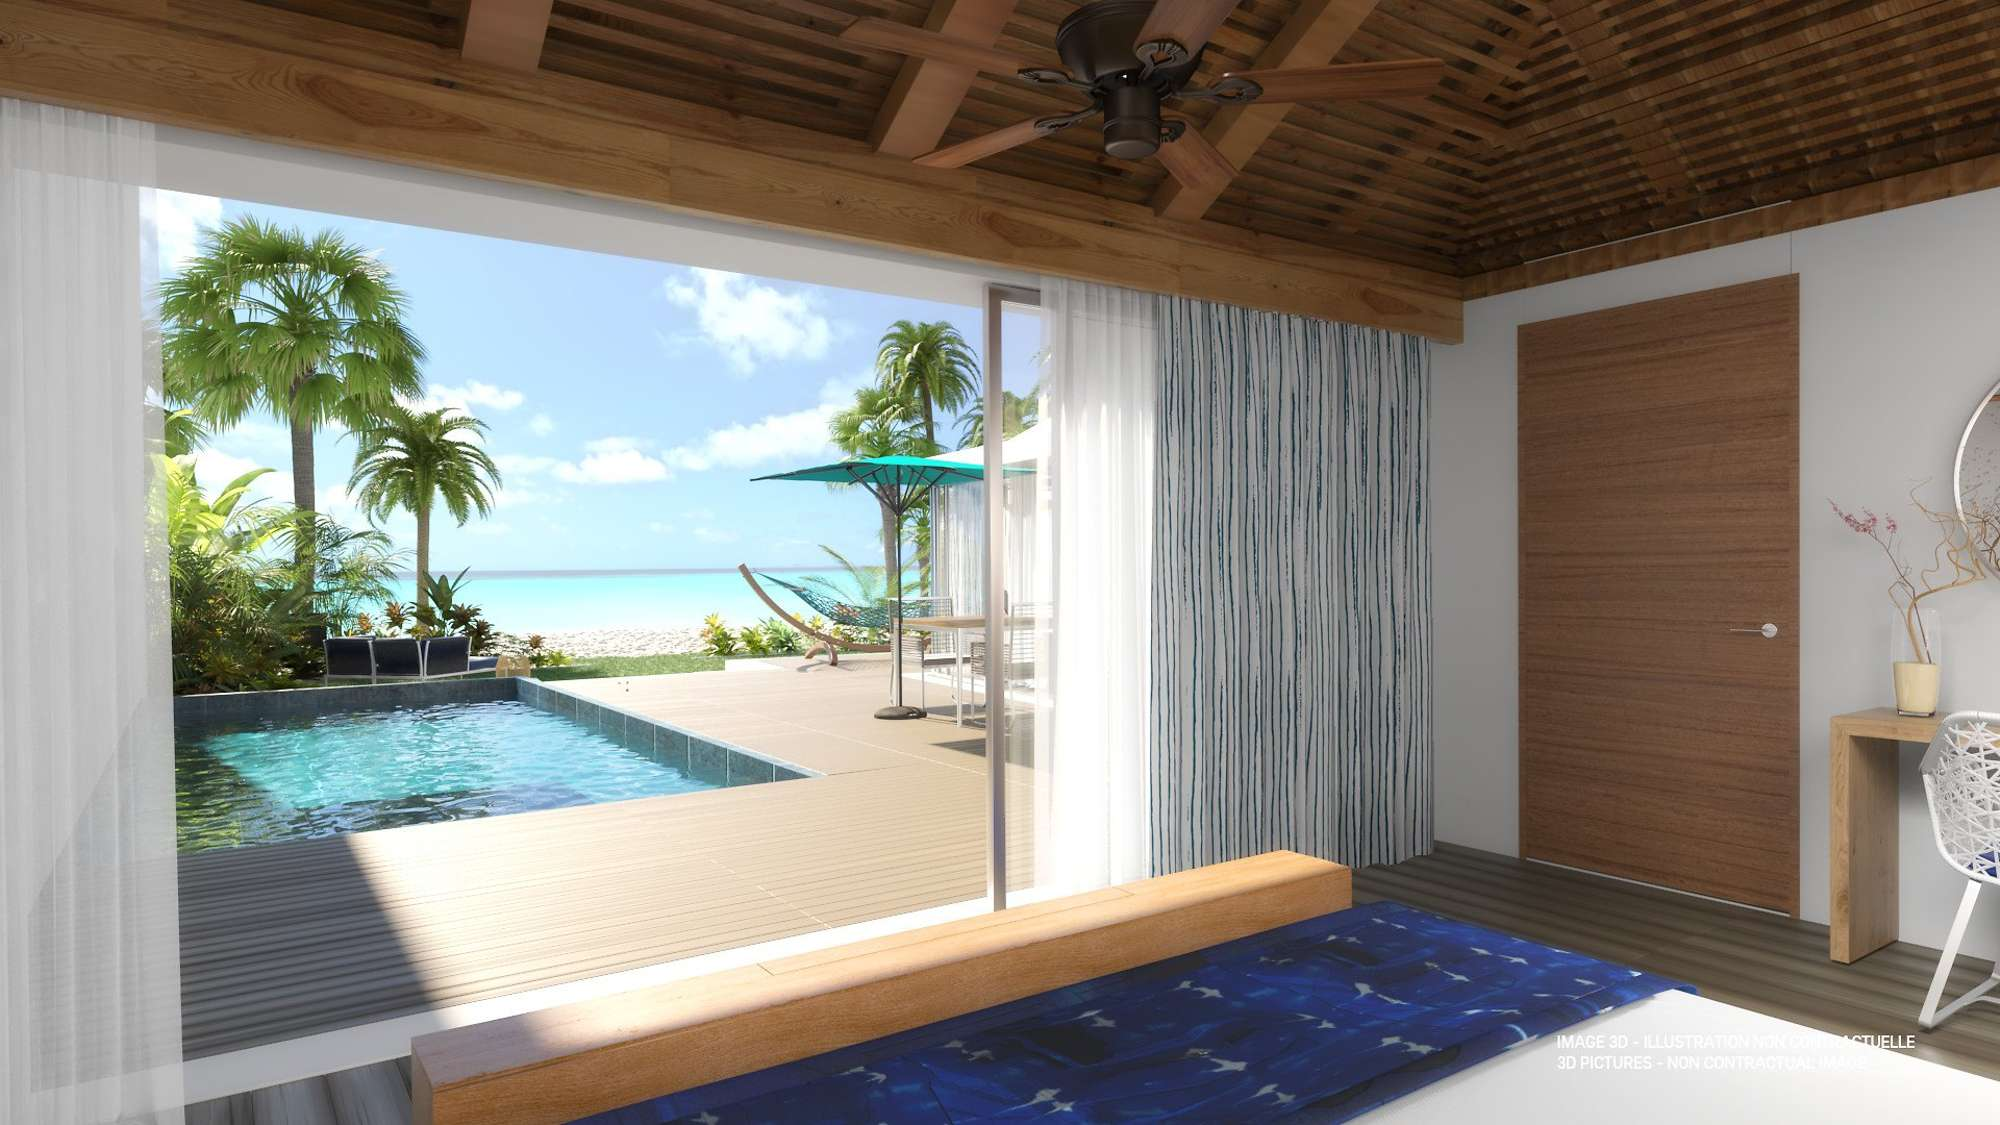 https___ns.clubmed.com_dream_EXCLUSIVE_COLLECTION_Resorts_Miches_Playa_Esmeralda_182722-monpupmfop-swhr